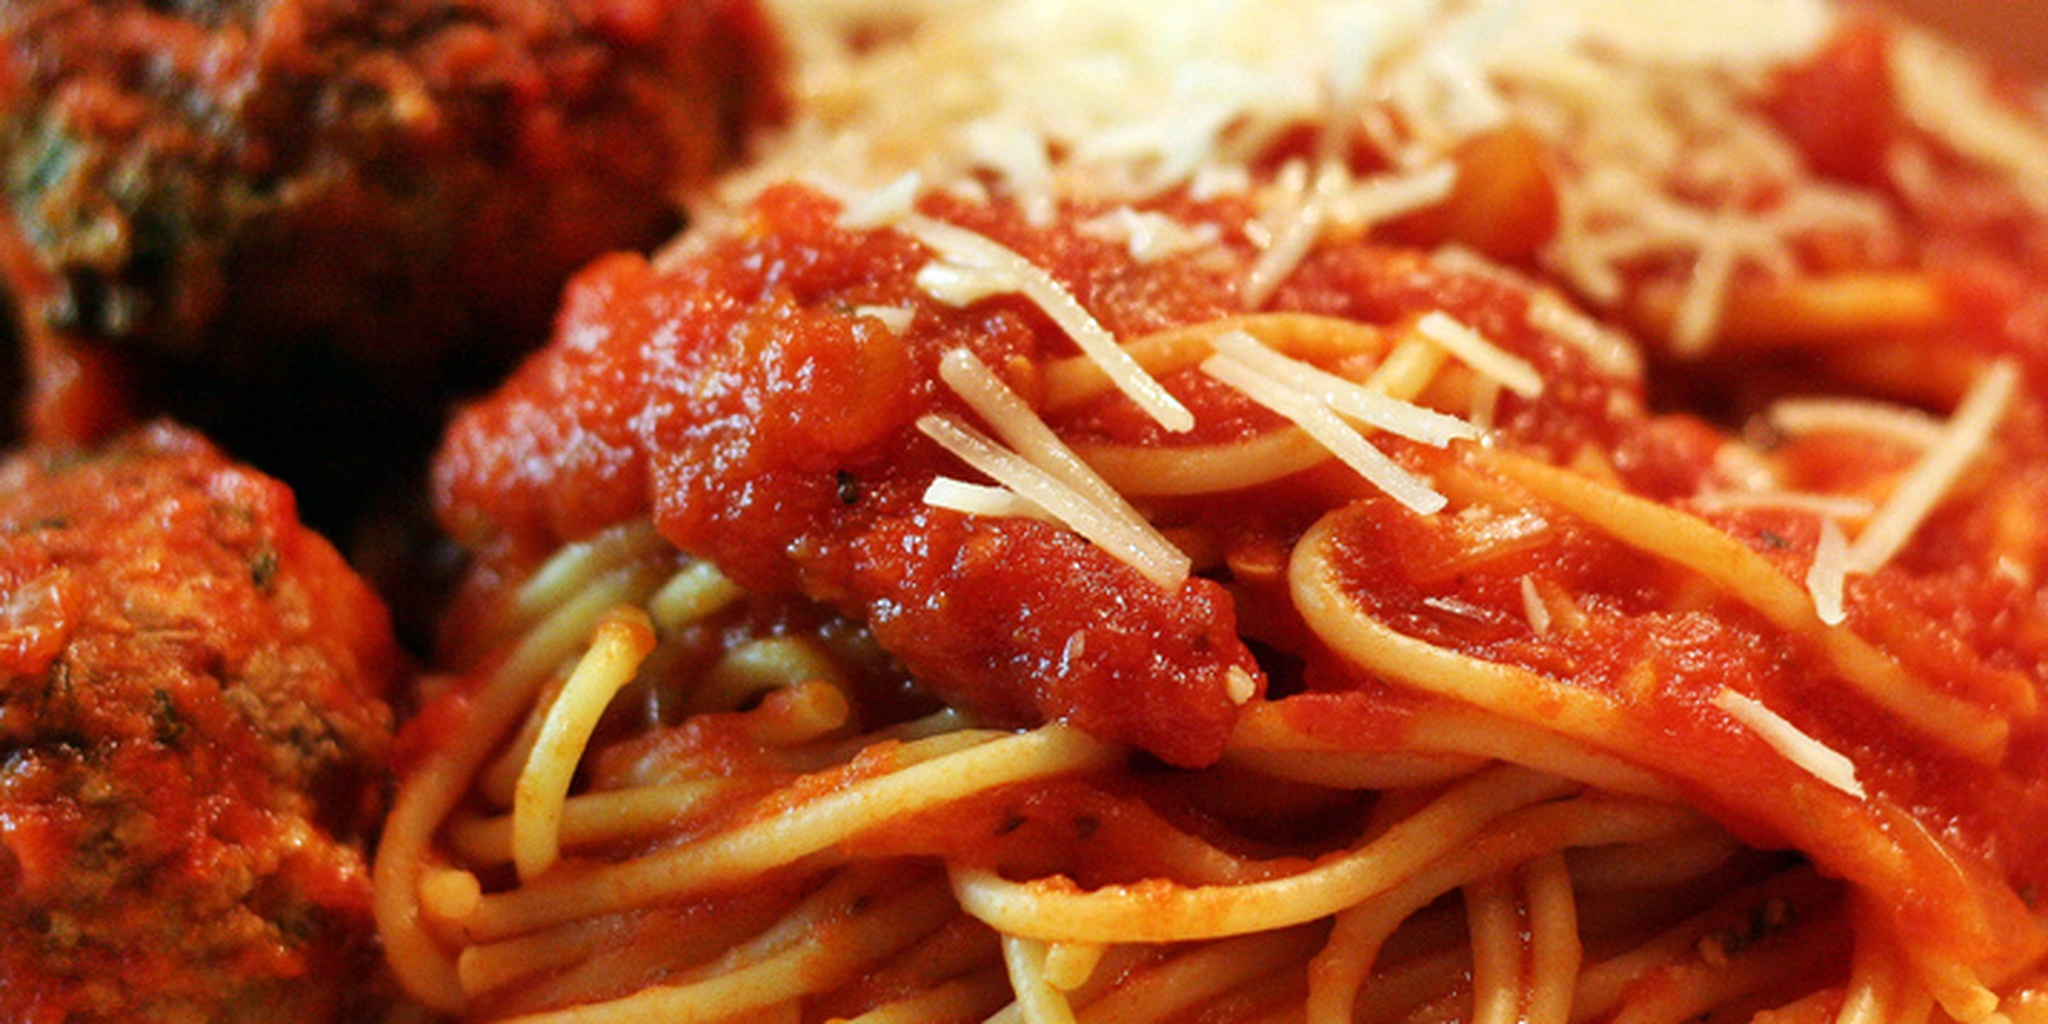 Spaghetti with Meatballs | Flickr - Photo Sharing!